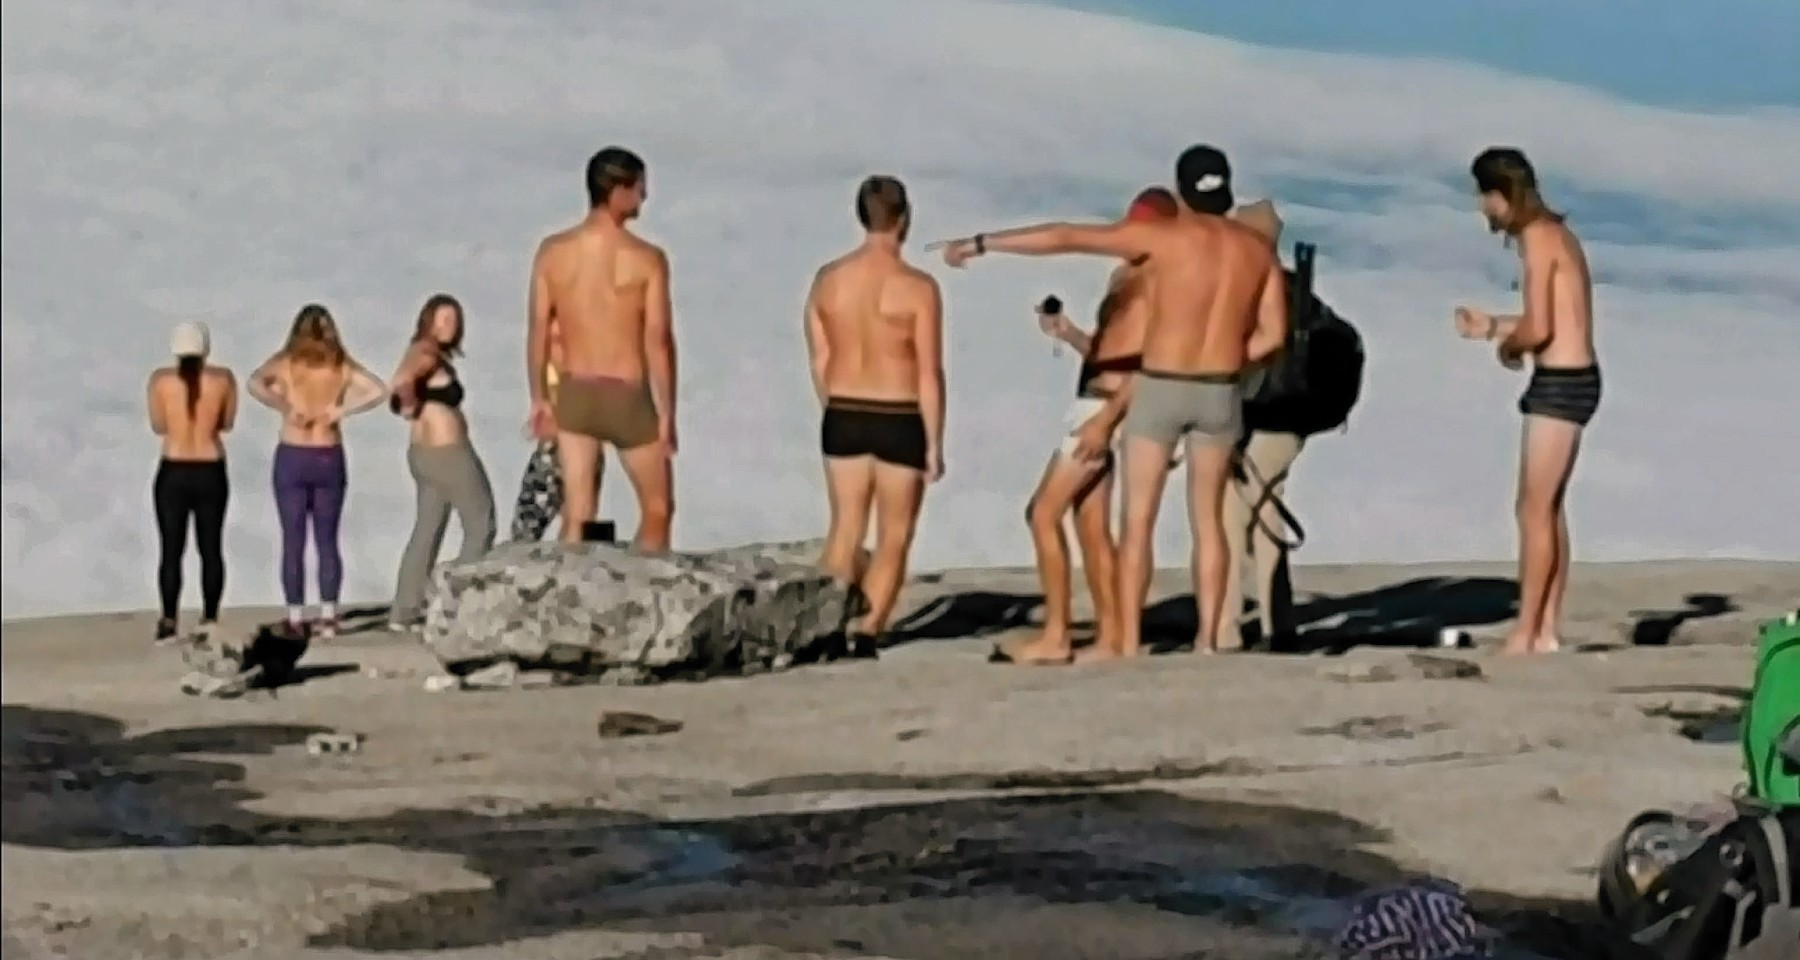 We are relieved: Tourists who stripped naked on sacred